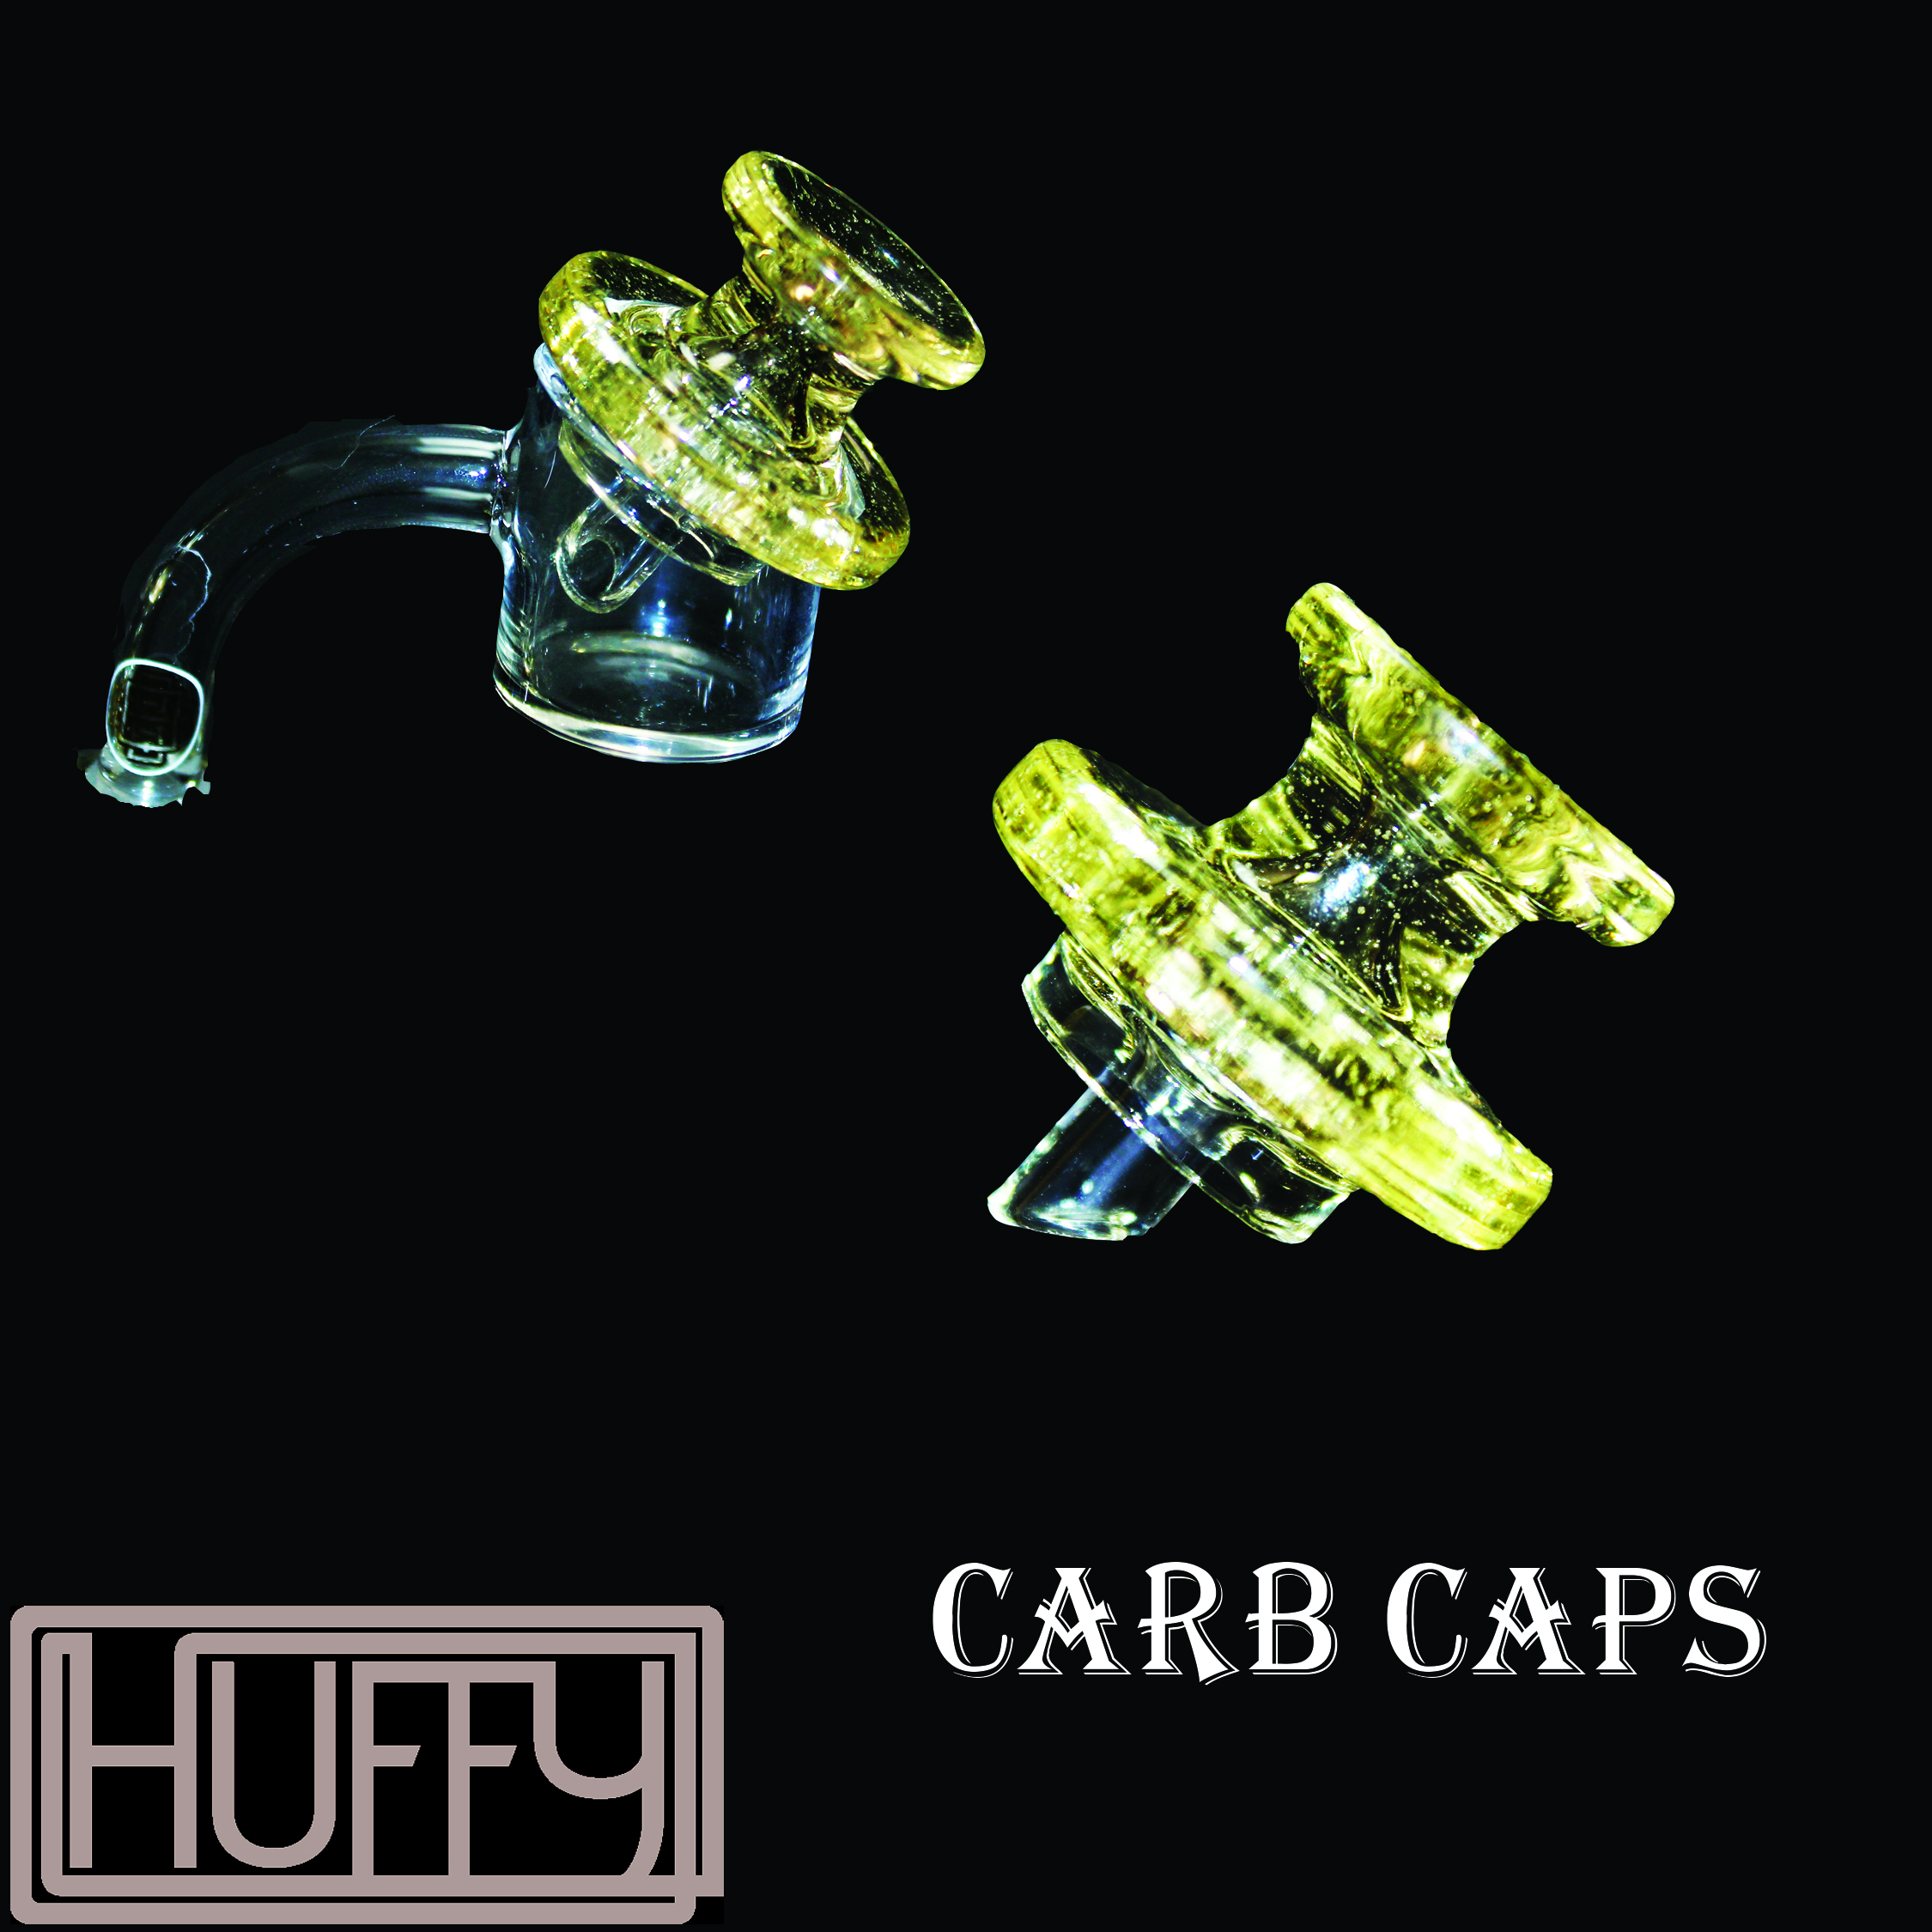 Color carb caps.jpg